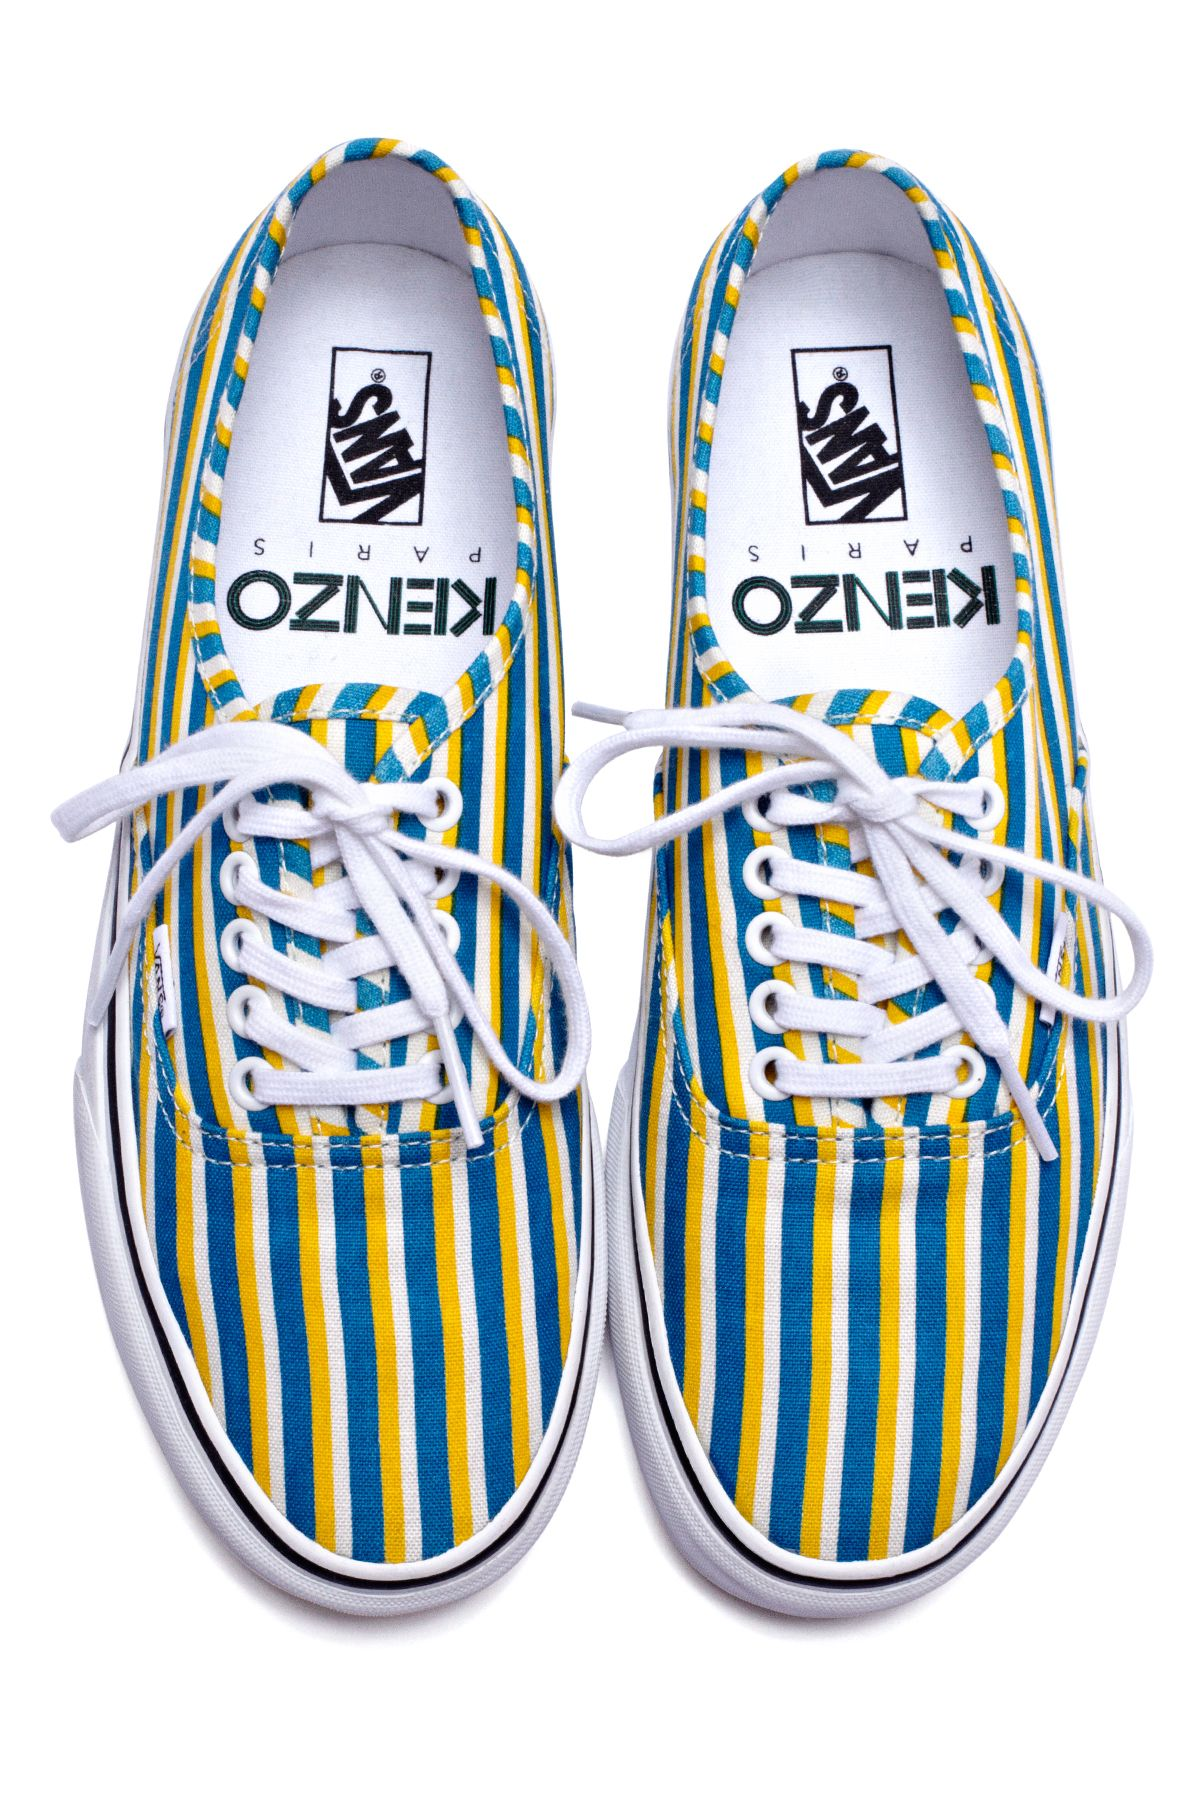 a614eb0cb5 Gift for the guys - Kenzo X Vans trainers from Opening Ceremony ...